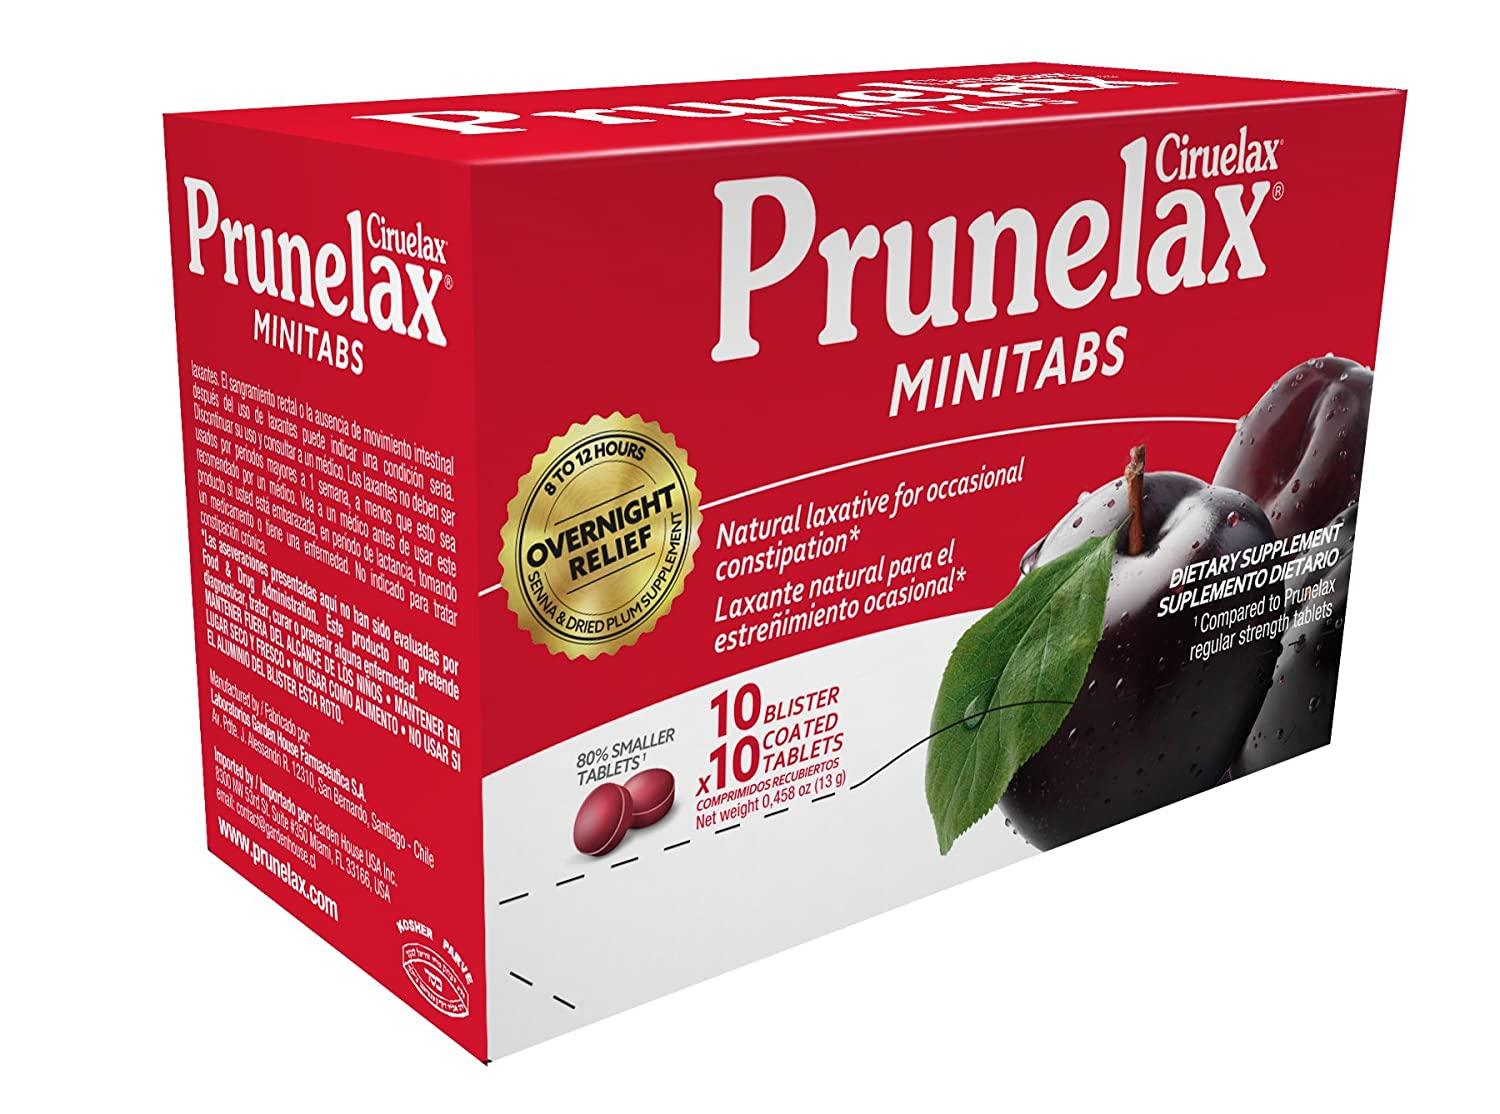 Amazon.com: Prunelax Ciruelax Minitabs, Natural Laxative, 100 Count: Health & Personal Care